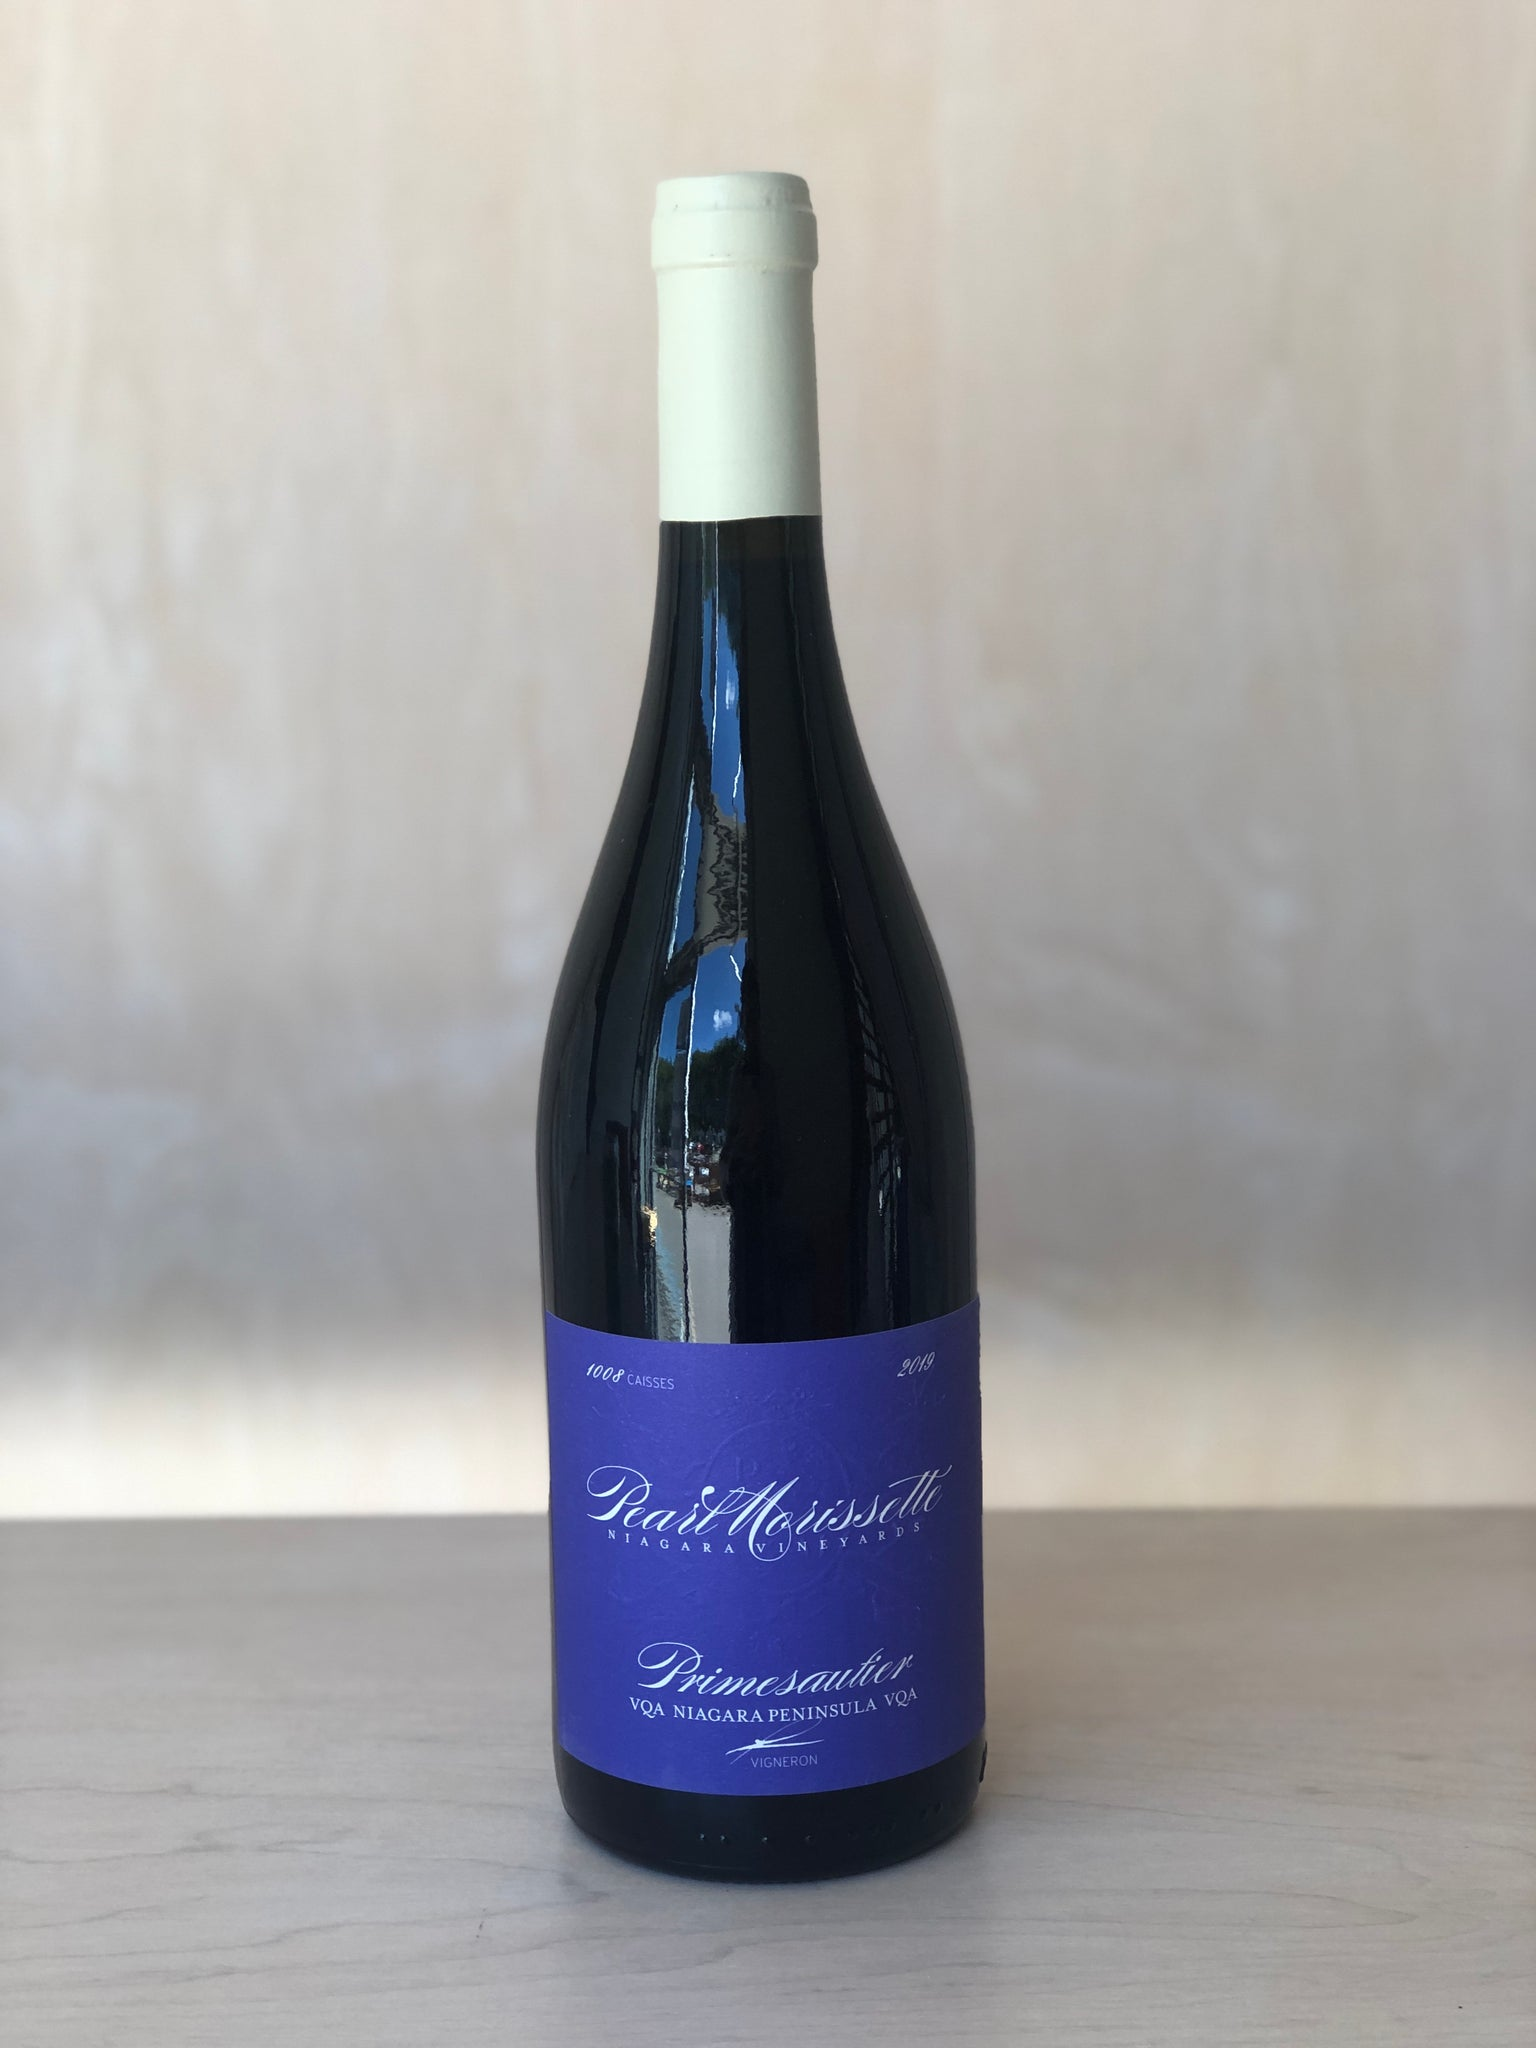 Pearl Morissette - Primesautier (red wine blend of Lemberger, Cab Franc, & Merlot) / 750mL